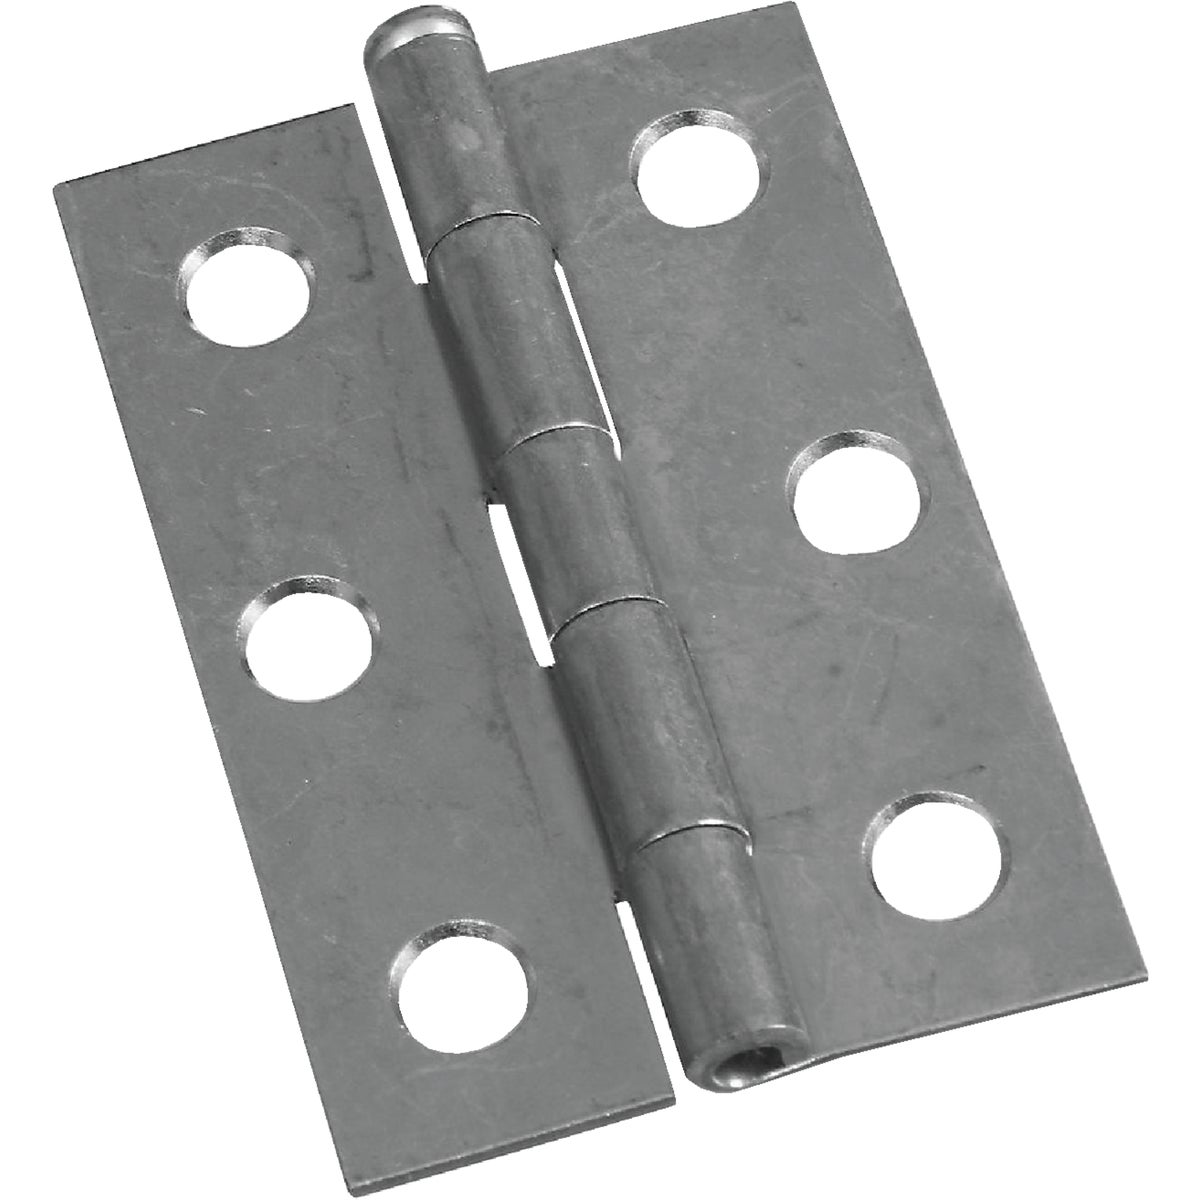 "2-1/2"" ZINC PIN HINGE - N141945 by National Mfg Co"